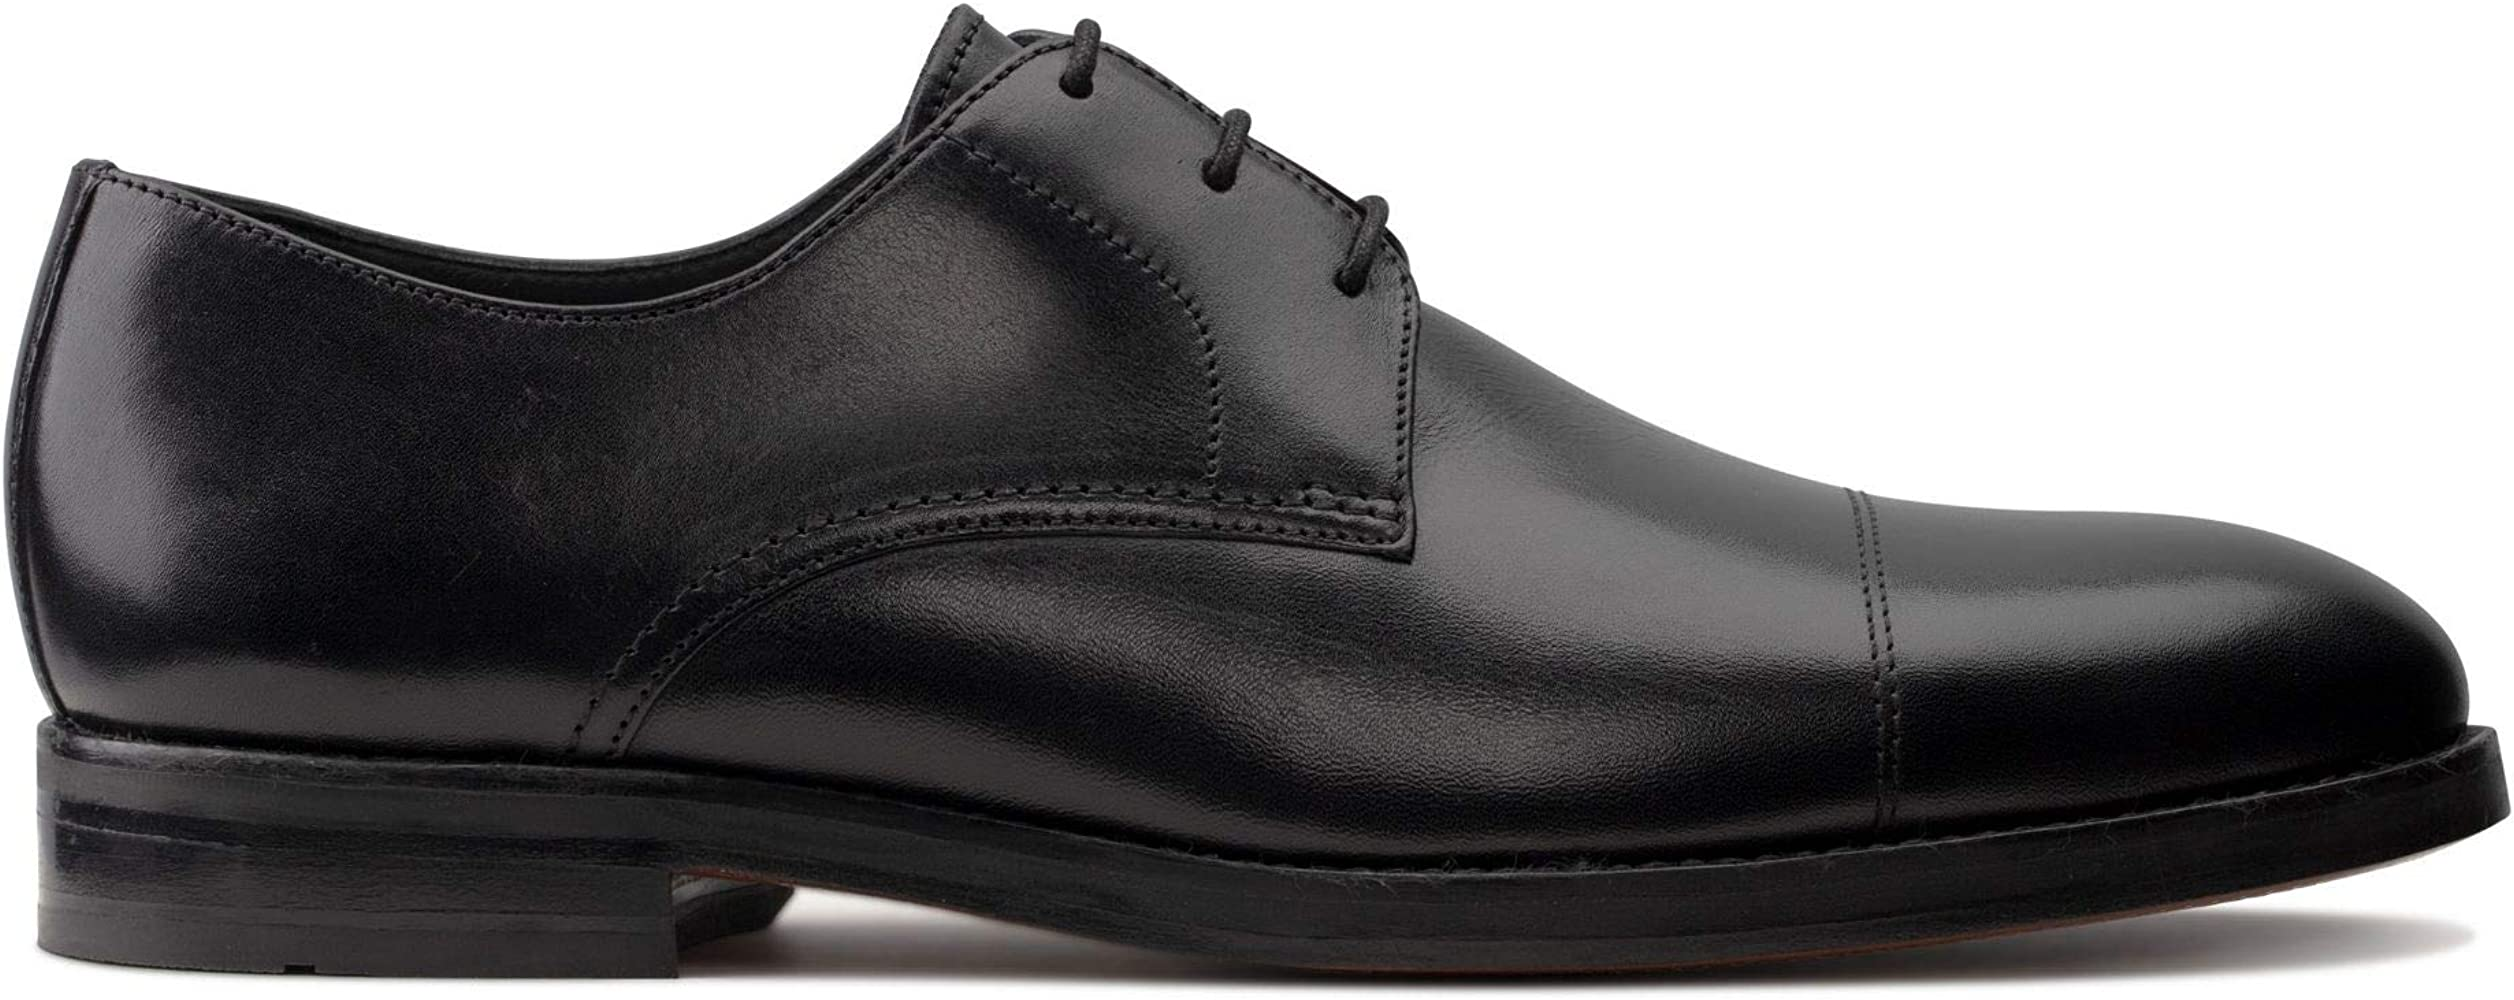 Clarks Hold Cap Black Leather Shoe